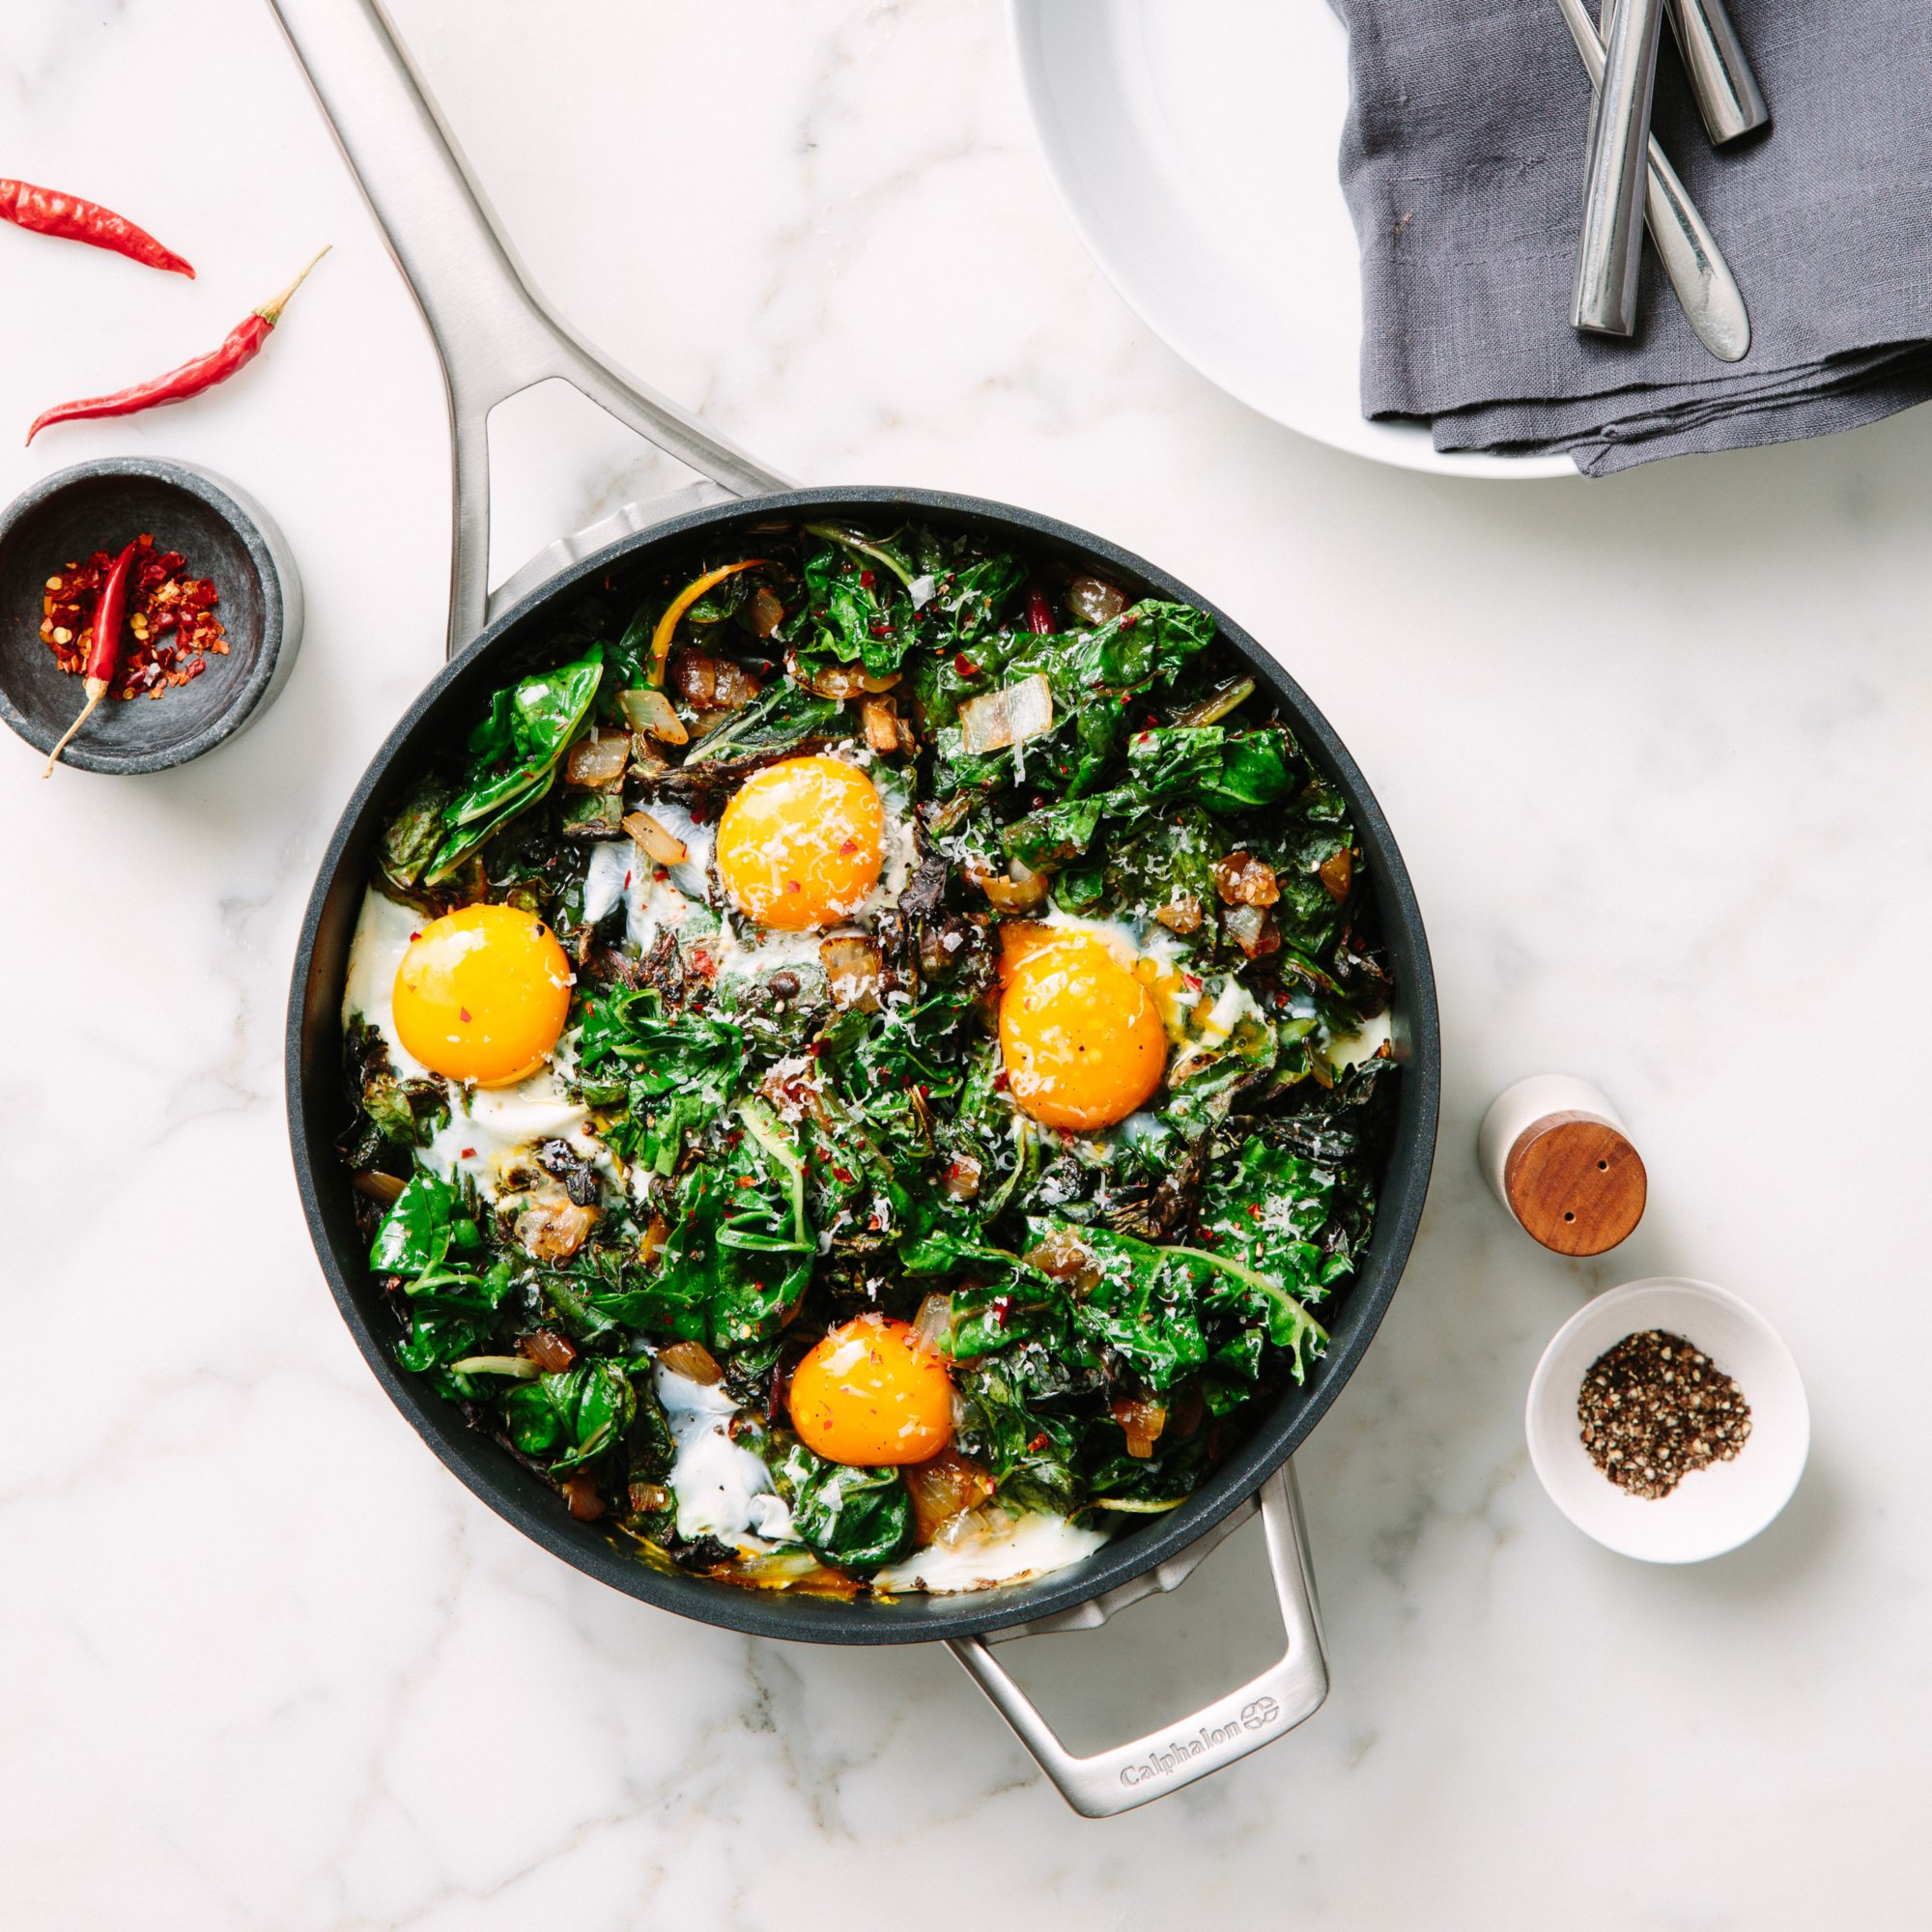 Baked Eggs and Greens